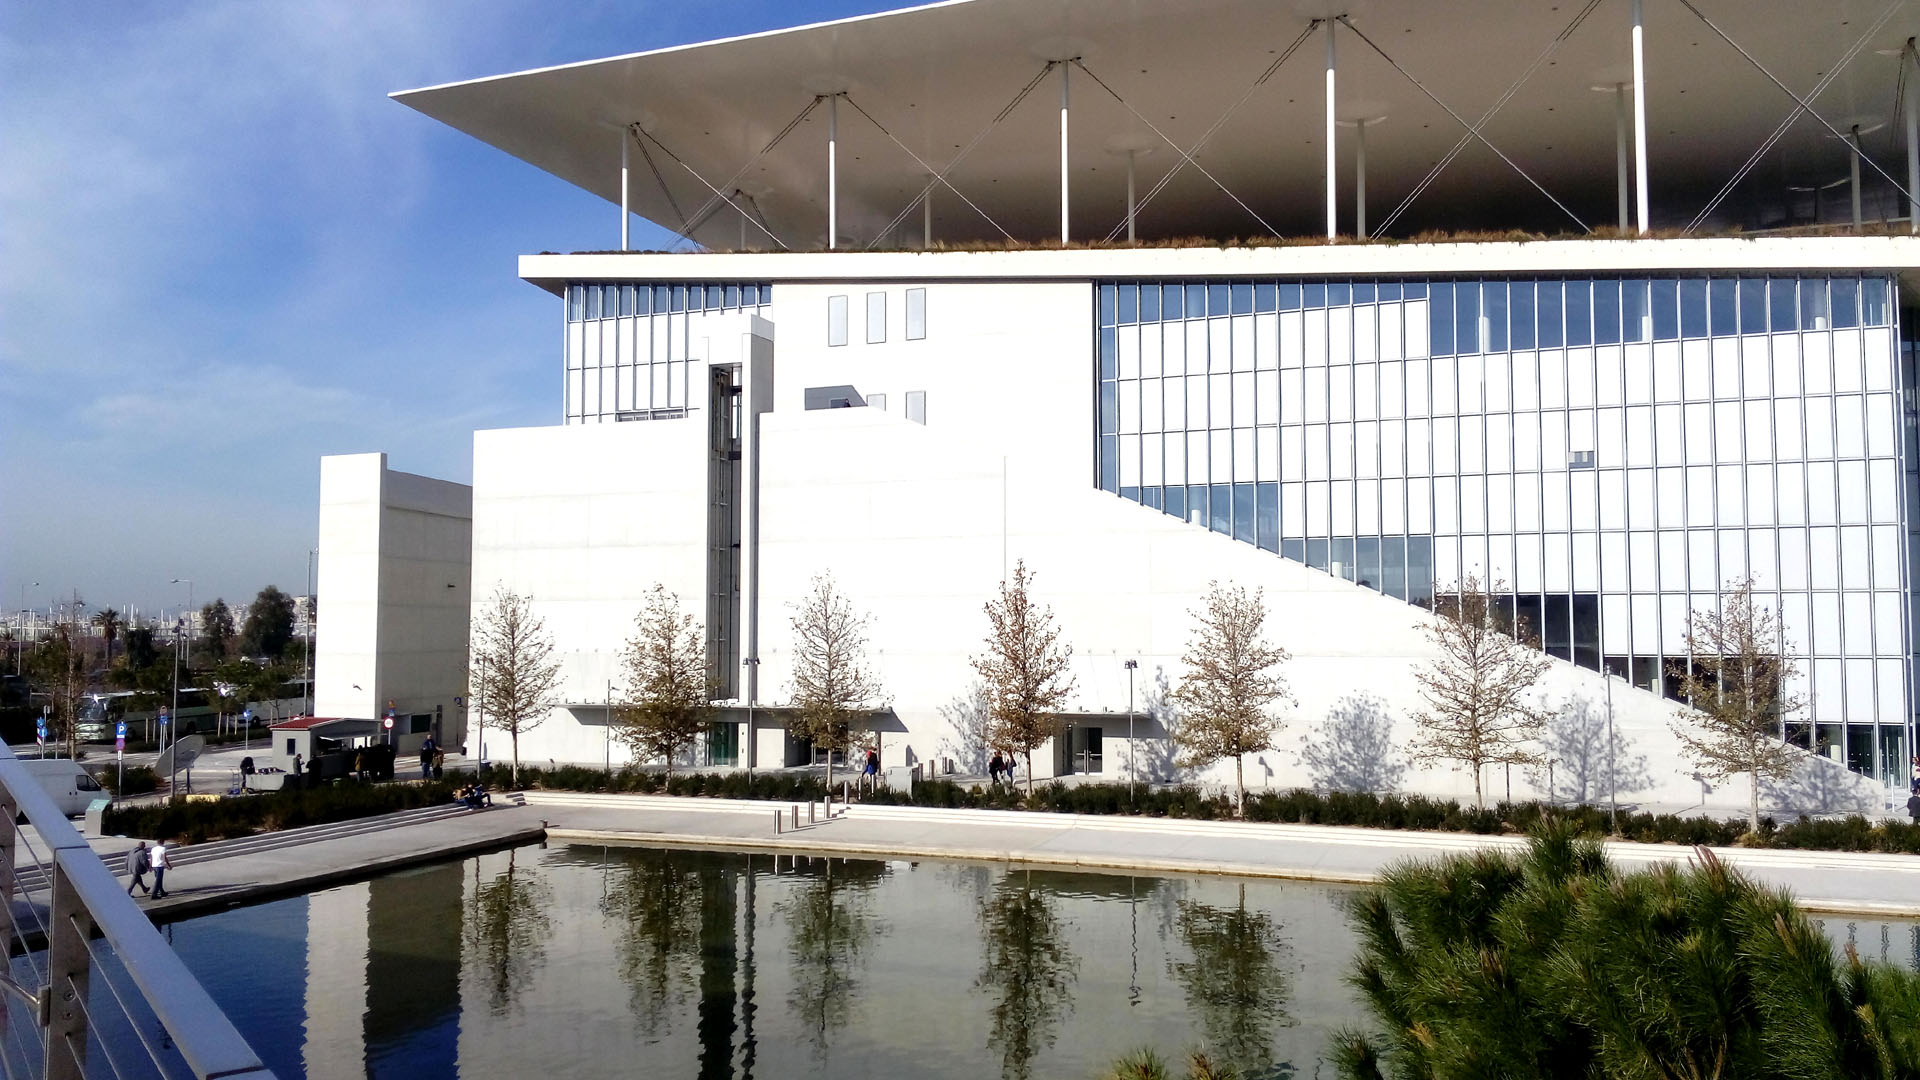 Stavros Niarchos foundation half day tour